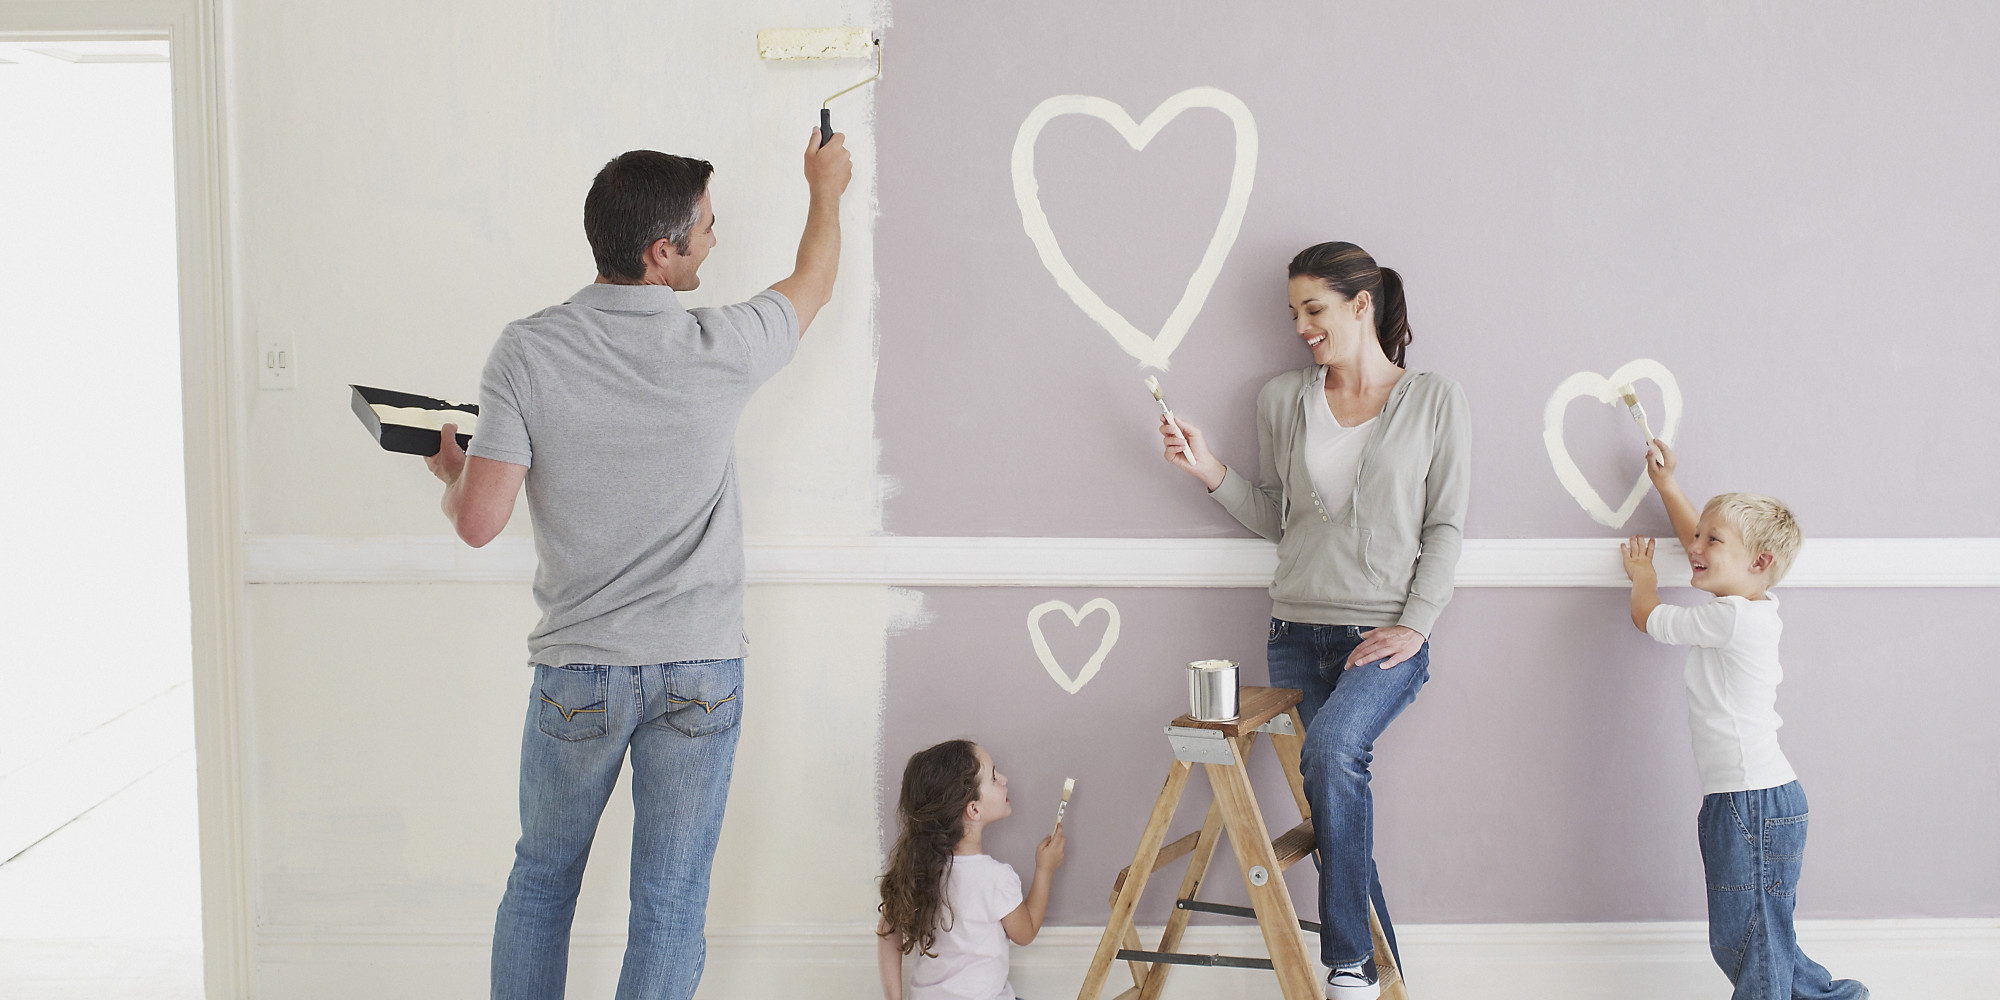 Do Yourself Home Improvement Project Top 10 Home Improvement Projects Huffpost